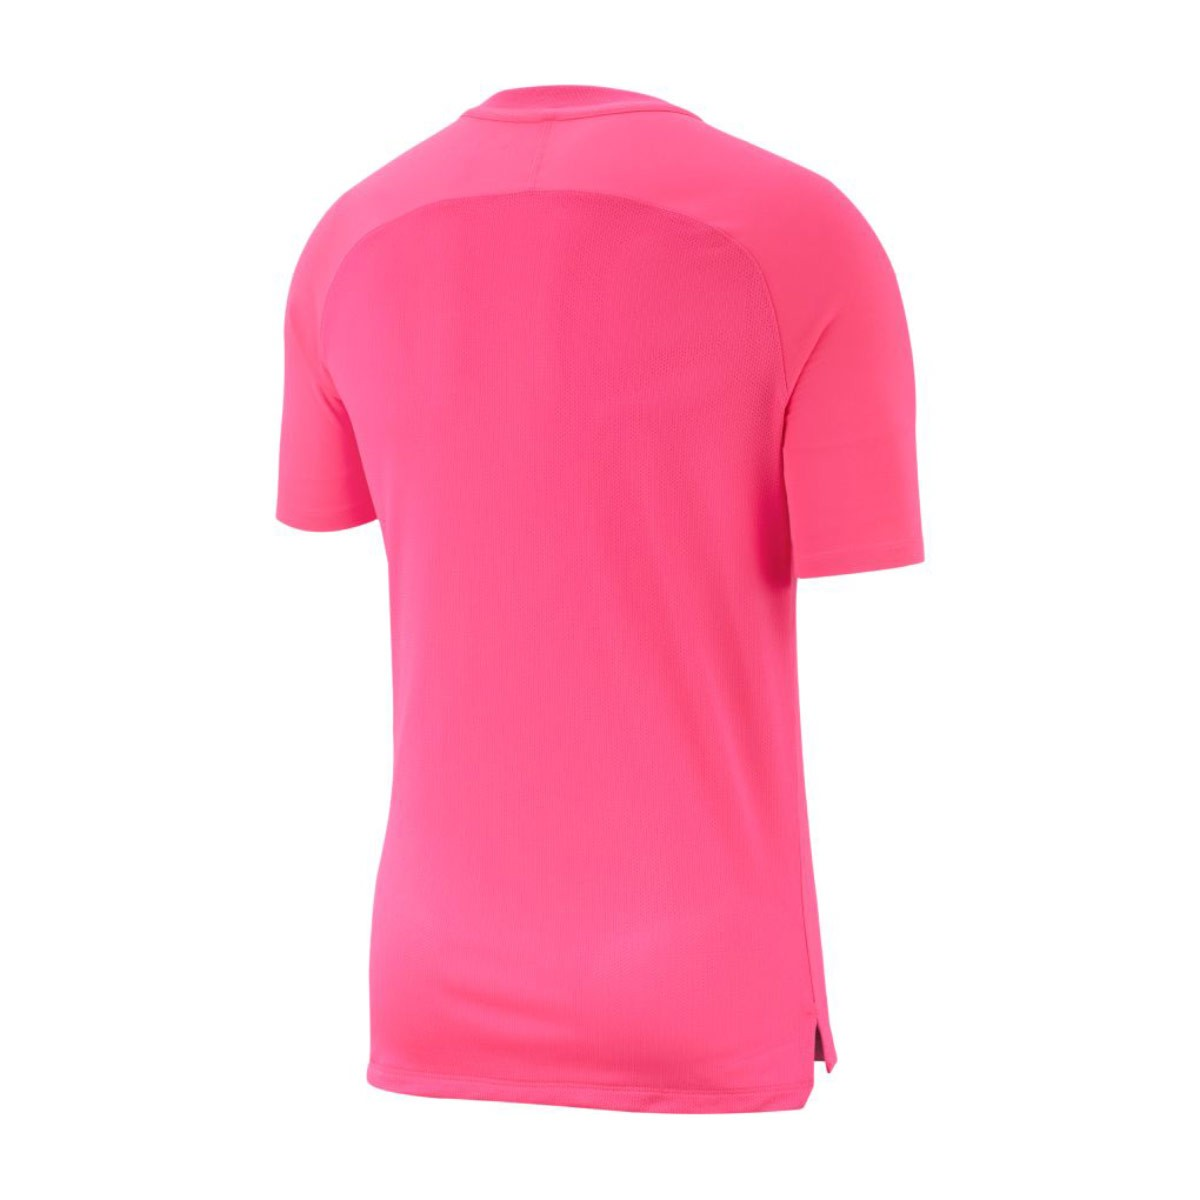 86199cf124 Jersey Nike Paris Saint-Germain Squad 2018-2019 Hyper pink-Black - Football  store Fútbol Emotion